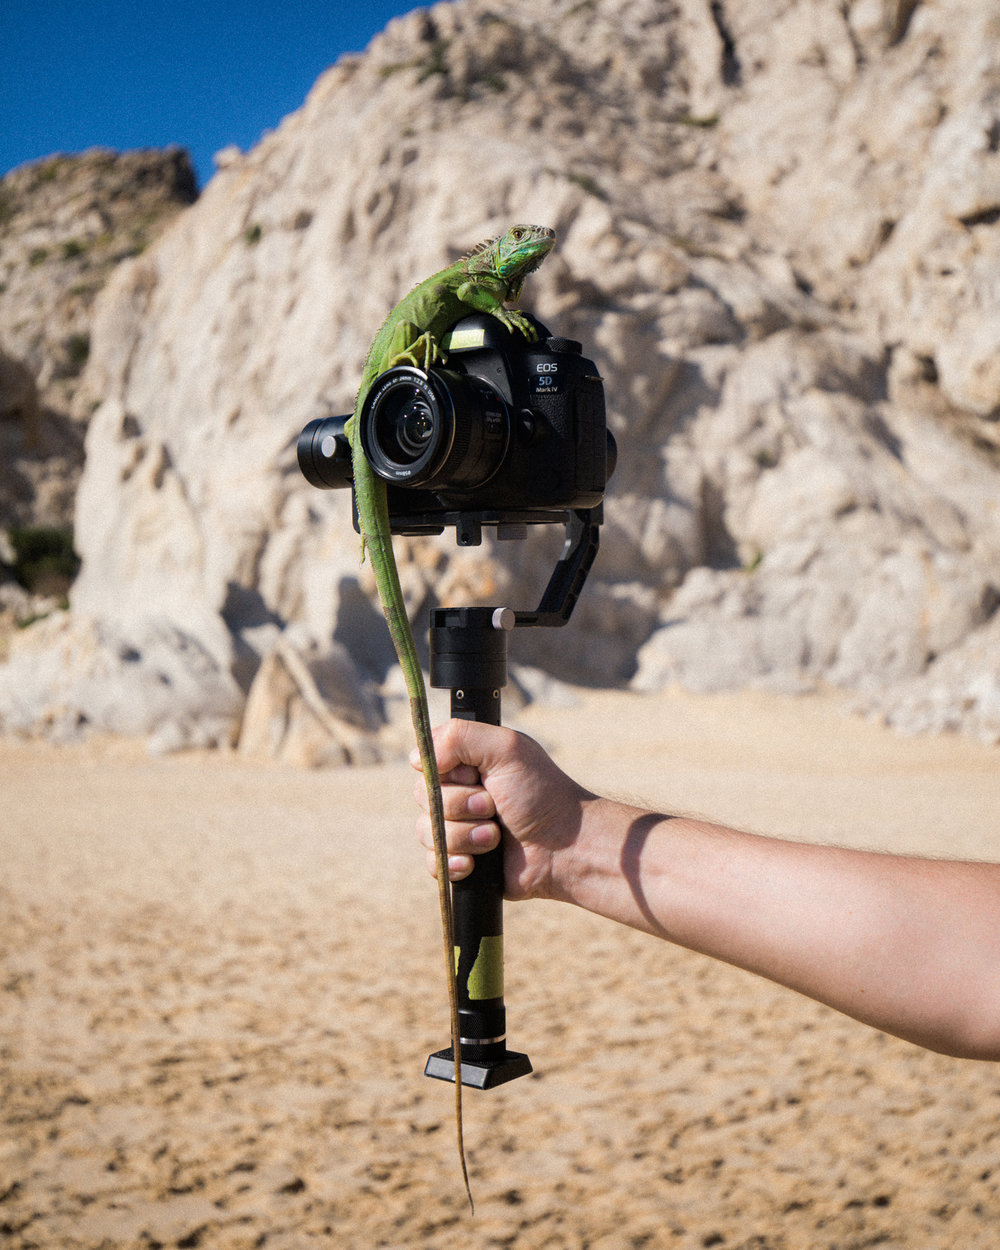 A lizard seeing how steady the Zhiyun Crane is at Lovers Beach in Cabo San Lucas. Photo by: Y.O. Photography